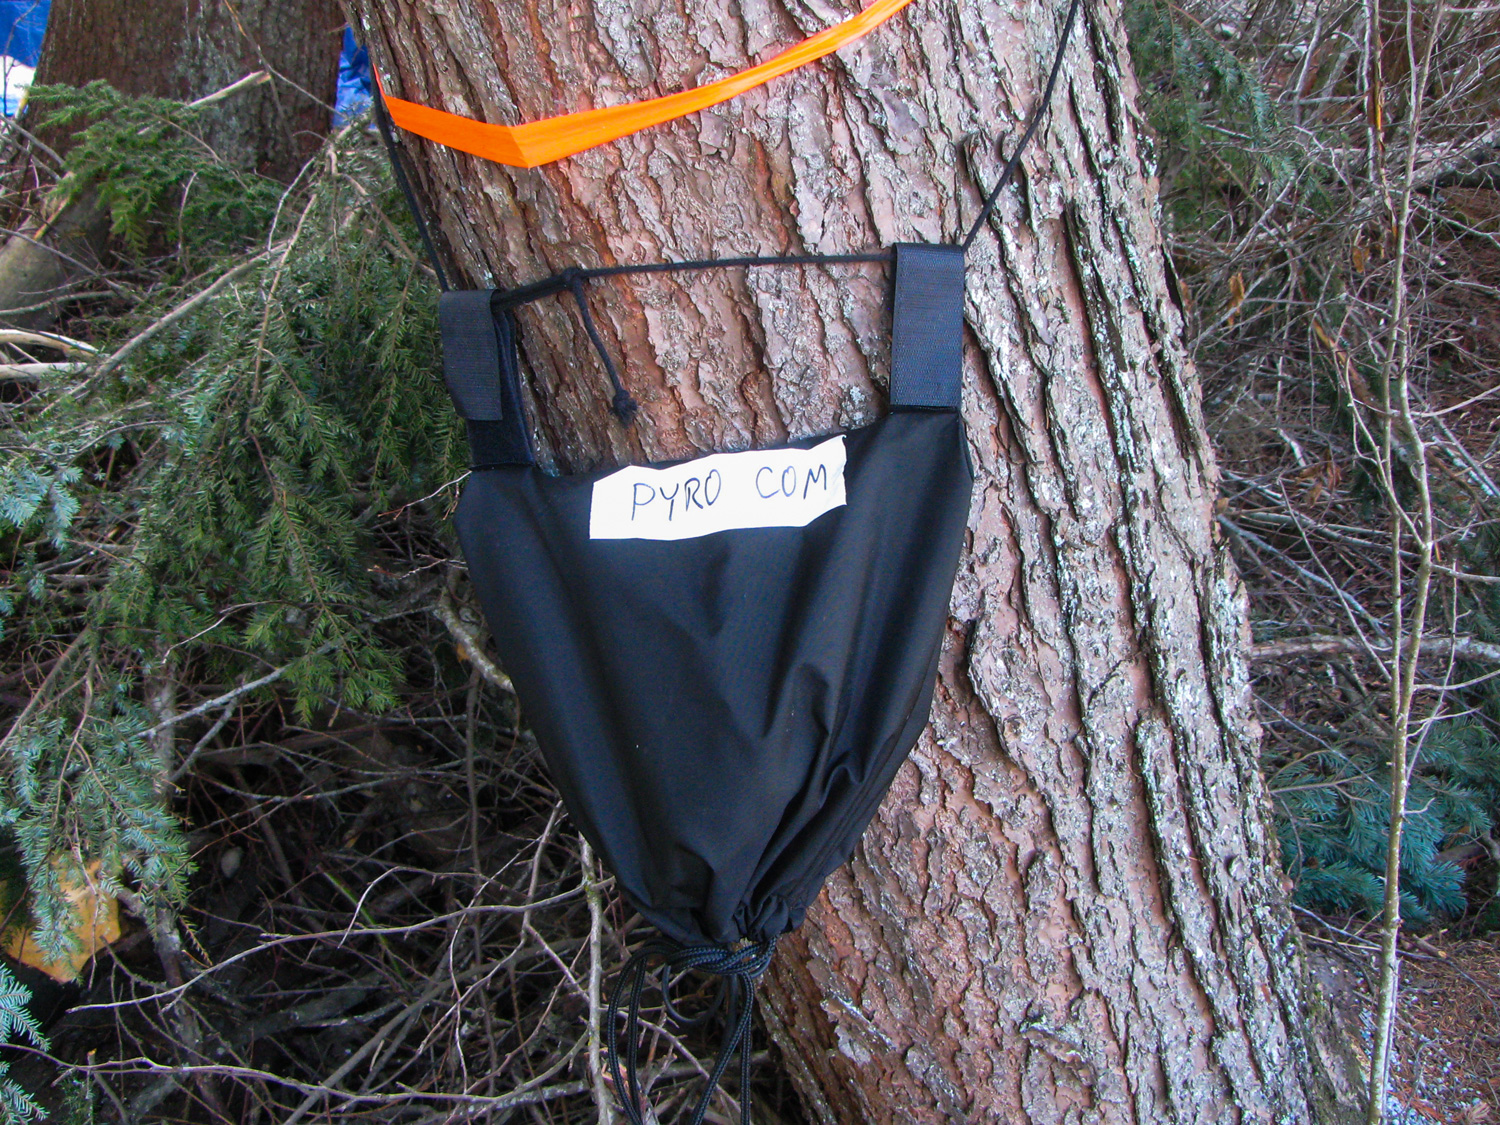 Strapped to a tree backstage was the pyro control beltpack.